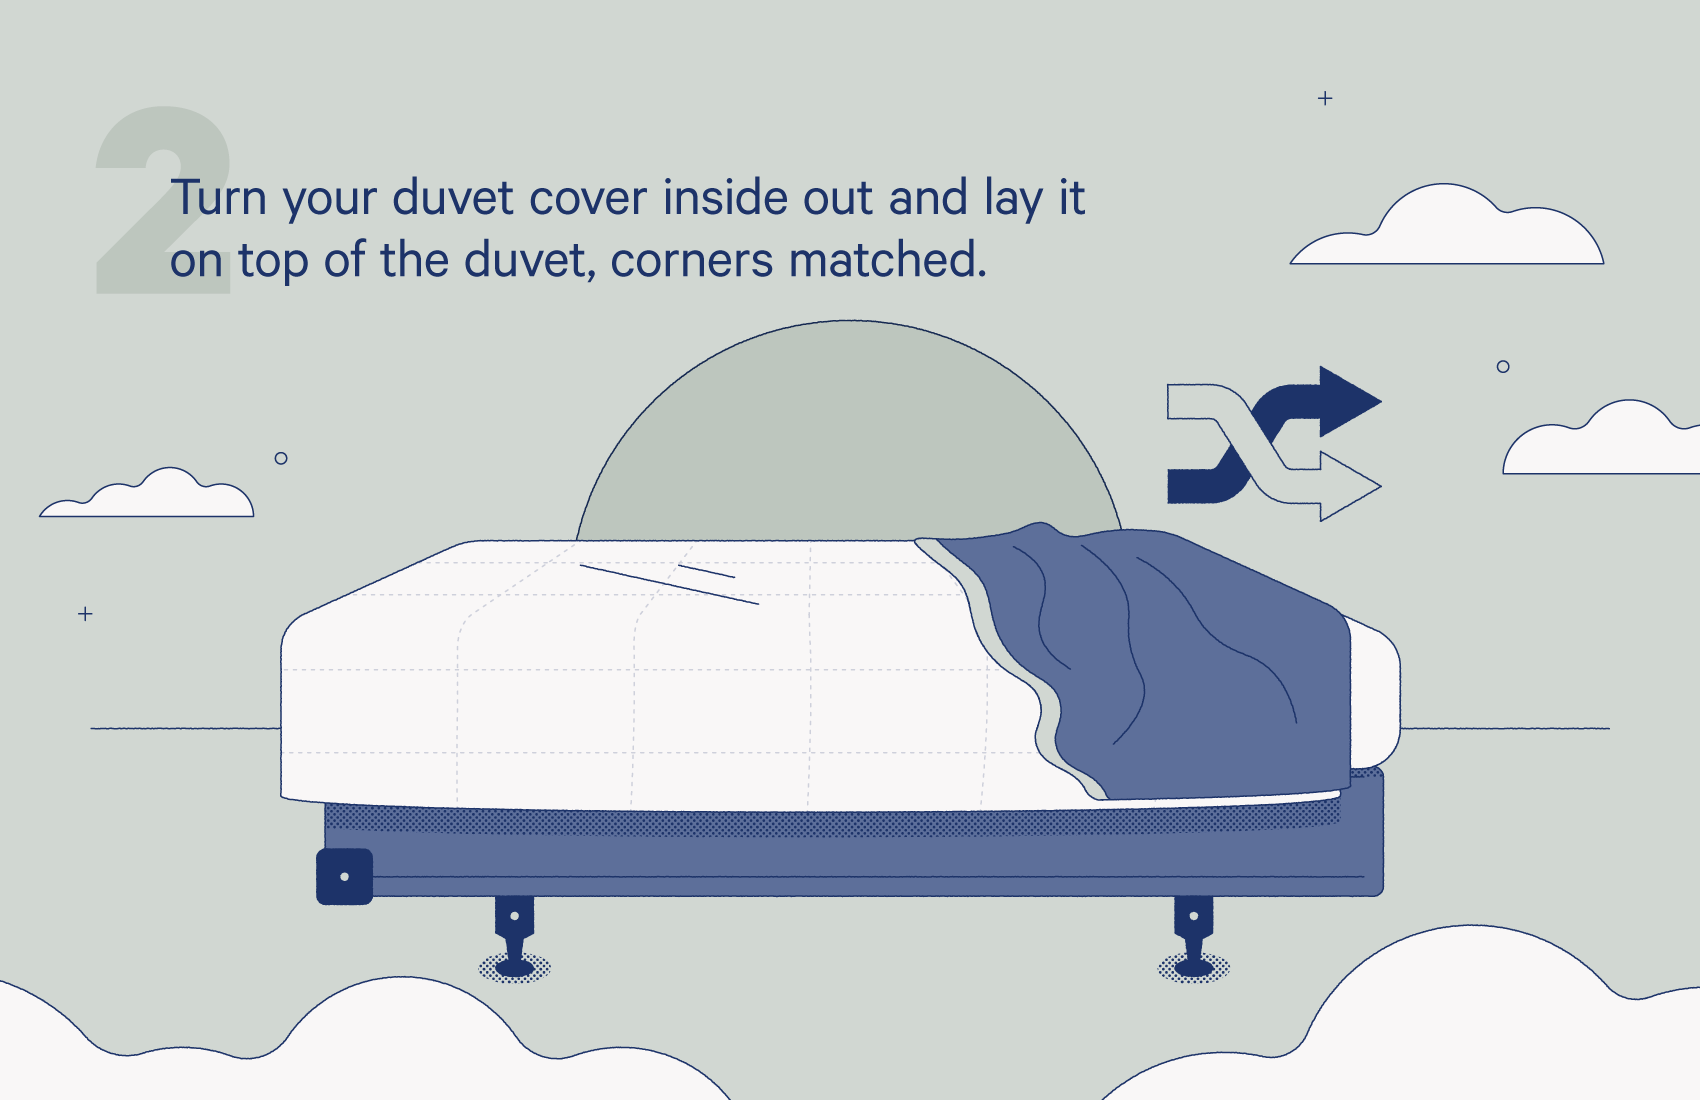 turn your duvet cover inside out and lay it on top of the duvet, corners matched.